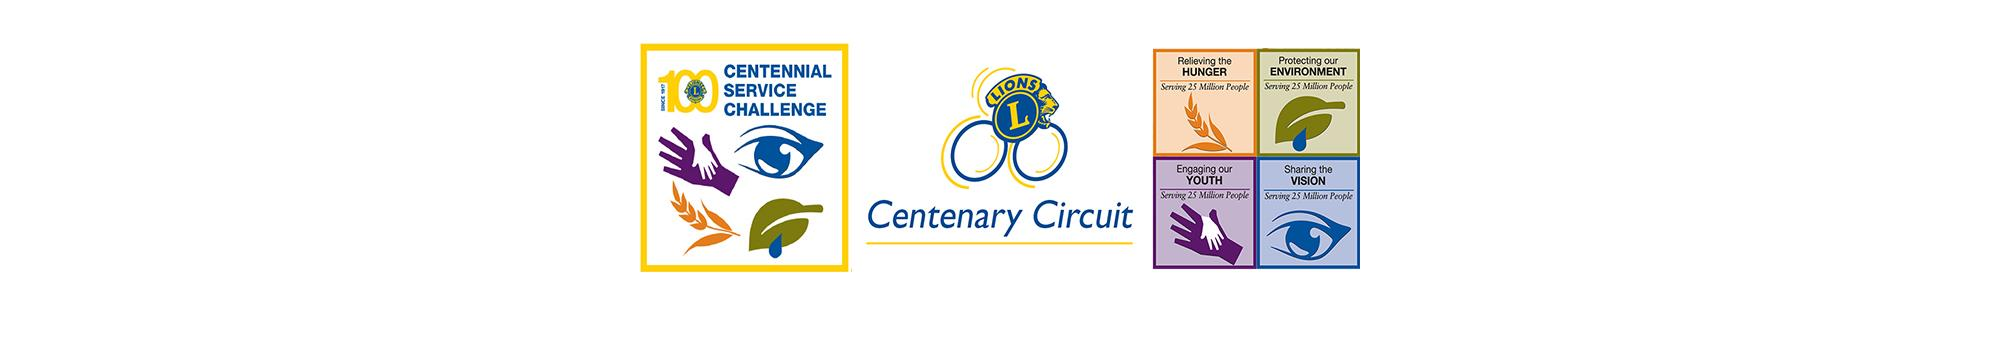 Lions Centenary Circuit - Donations -